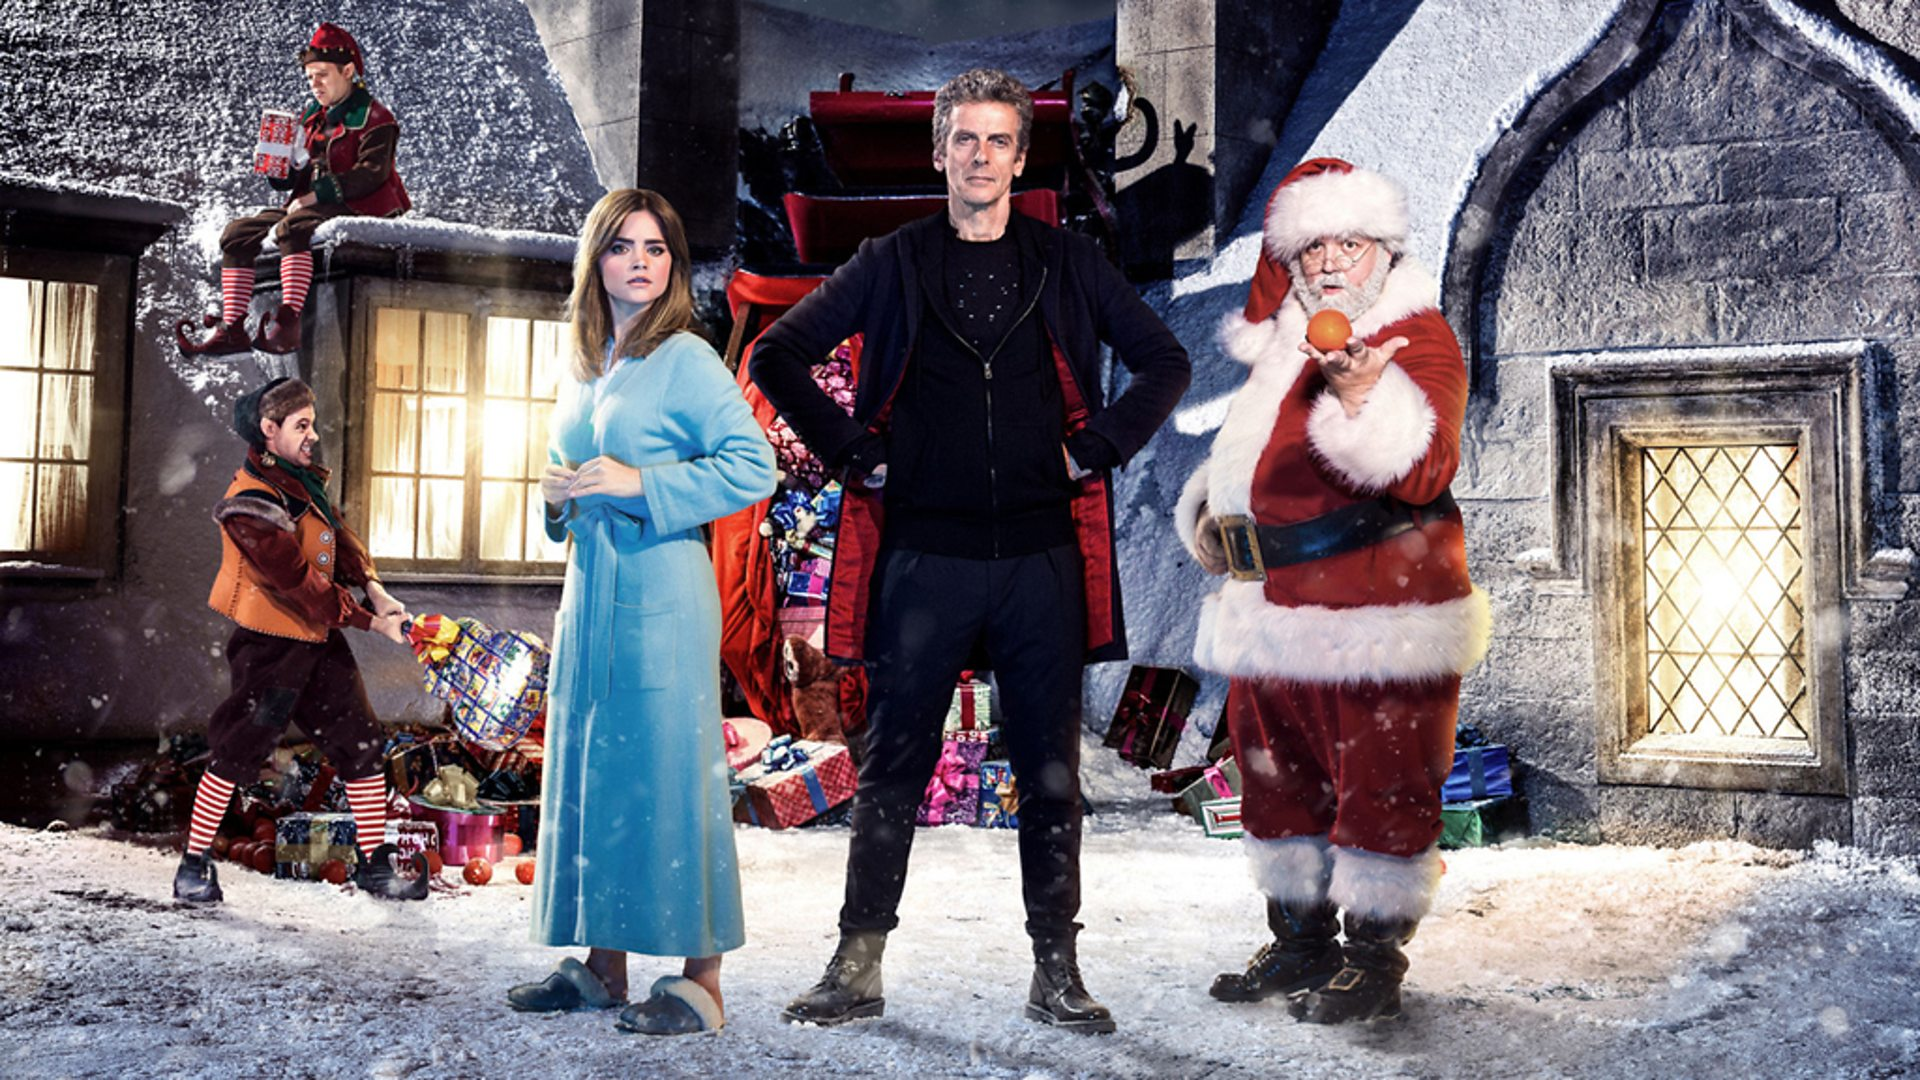 Peter Capaldi as The Doctor, Jenna Coleman as Clara Oswald - Doctor Who Last Christmas - (c) BBC